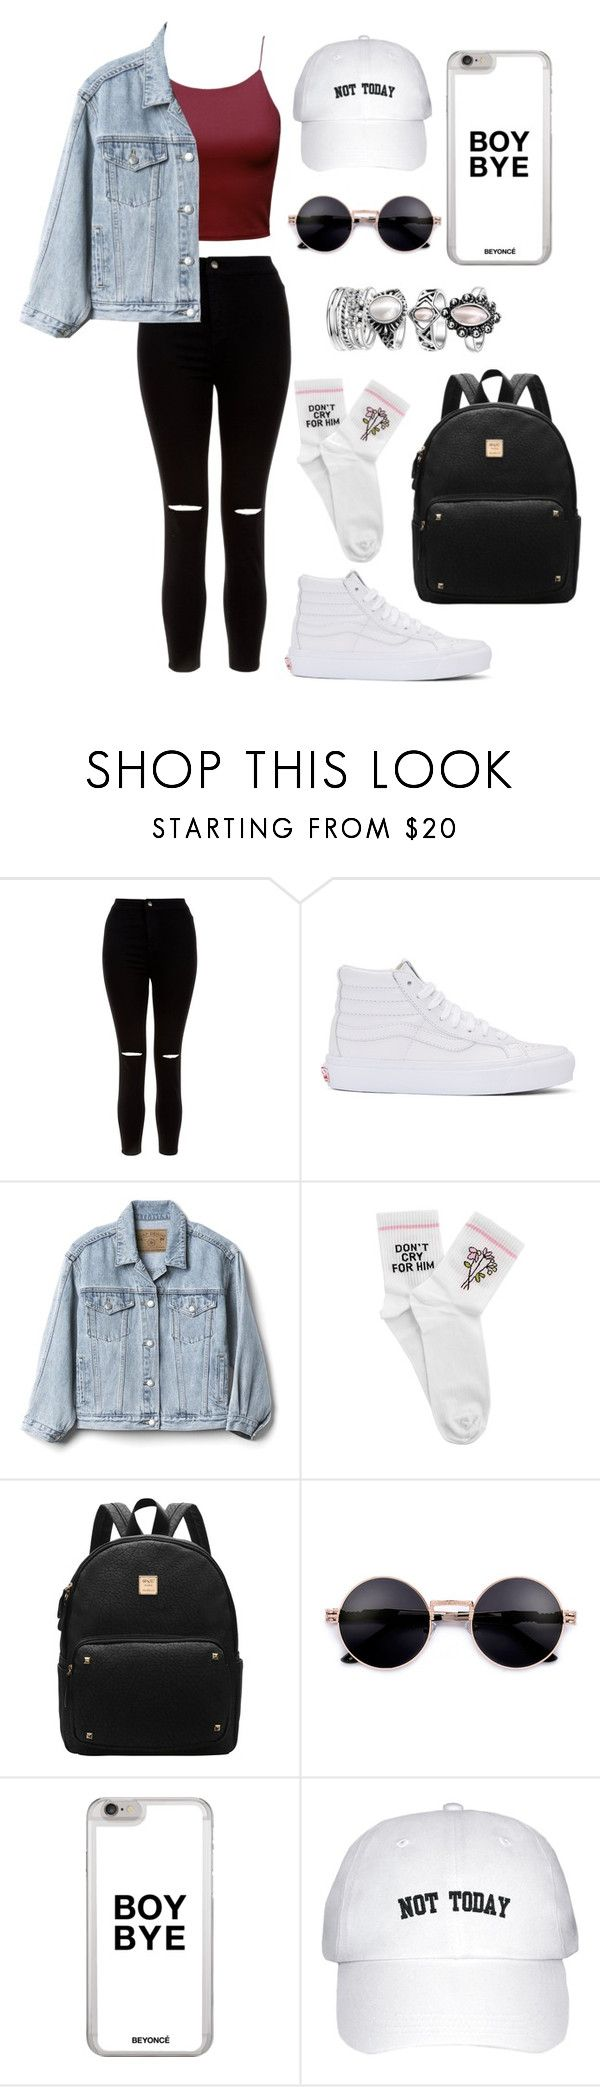 """#14"" by mylanelle ❤ liked on Polyvore featuring New Look, Vans, Gap and Yeah Bunny"